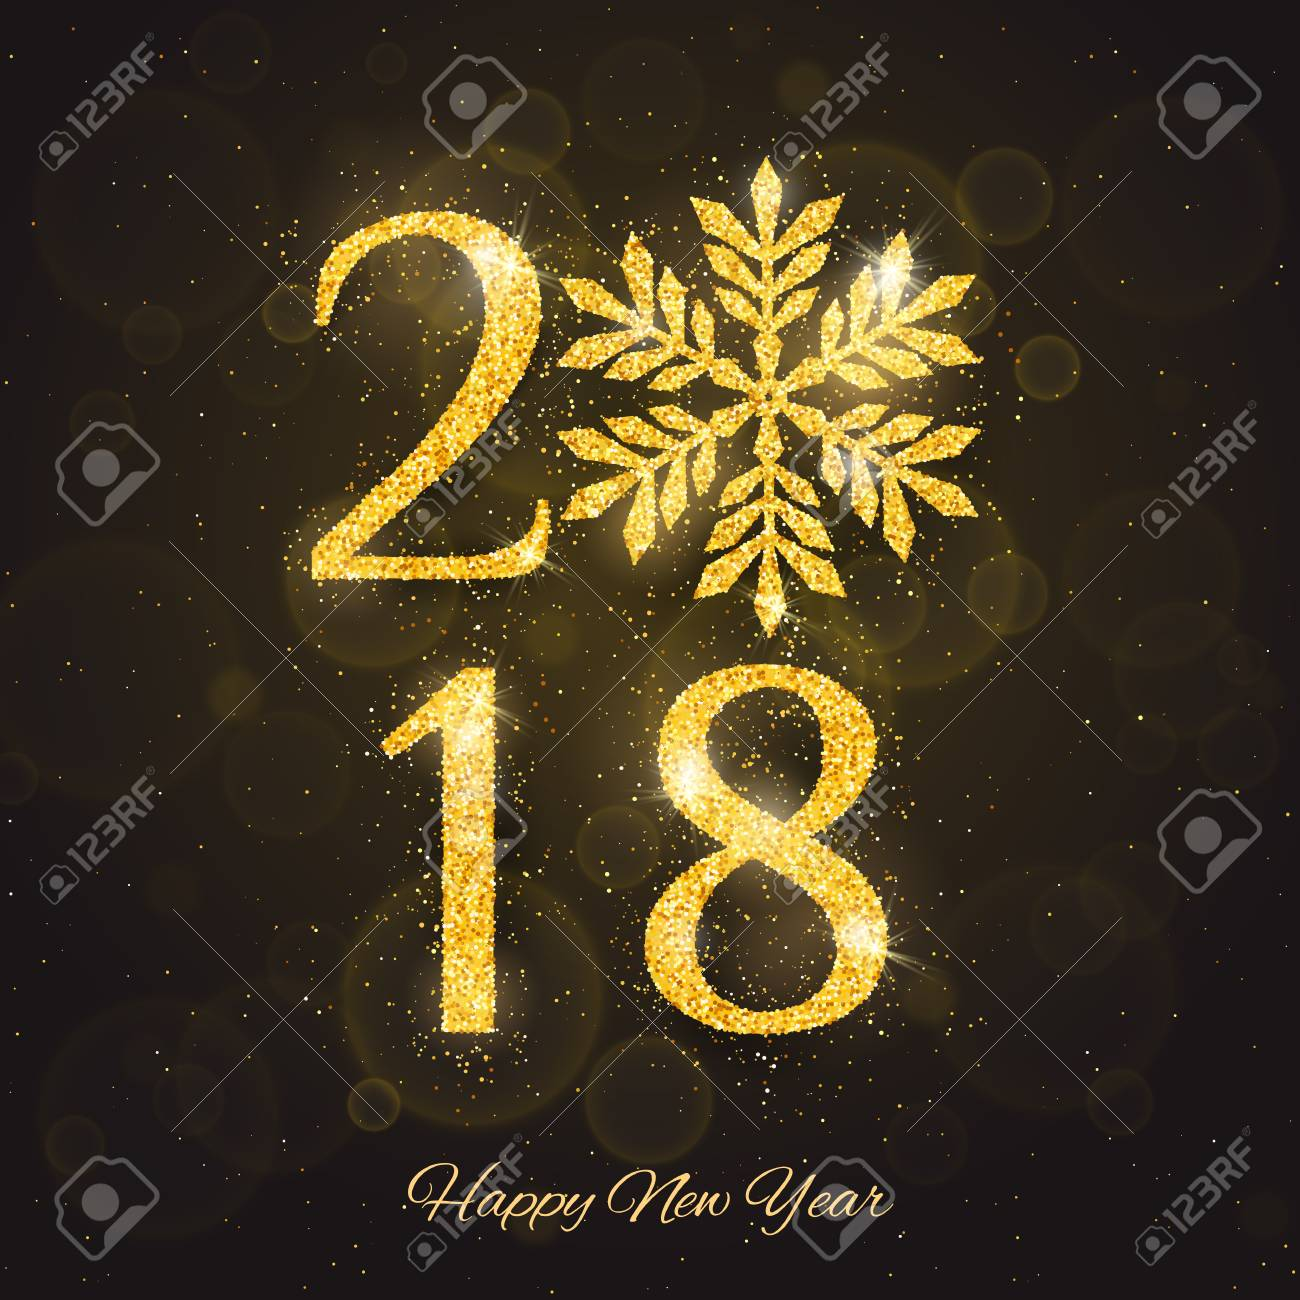 stock photo vector 2018 happy new year and merry christmas greeting card template with sparkling glitter golden textured snowflake